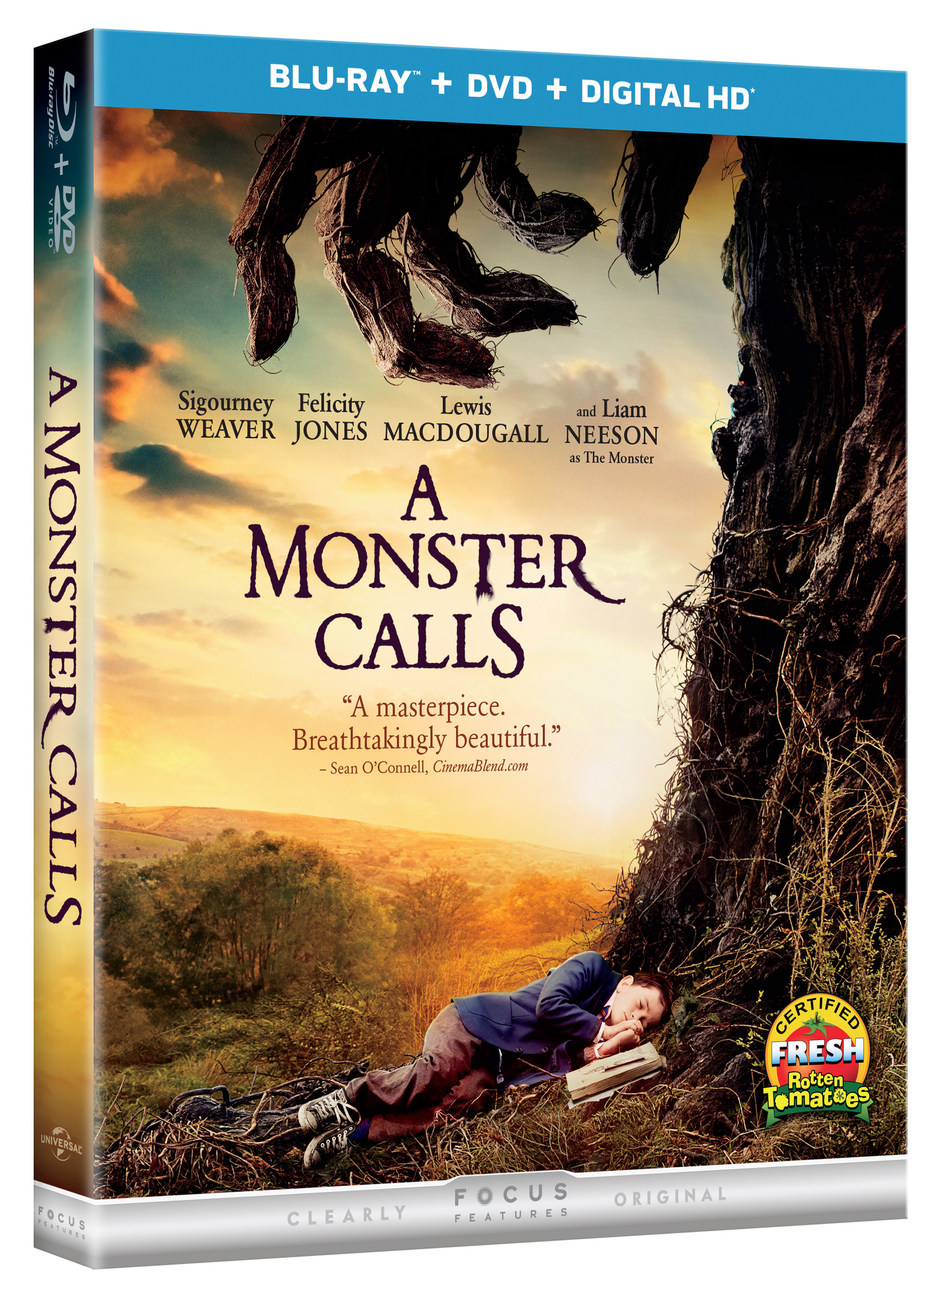 From Universal Pictures Home Entertainment: A Monster Calls